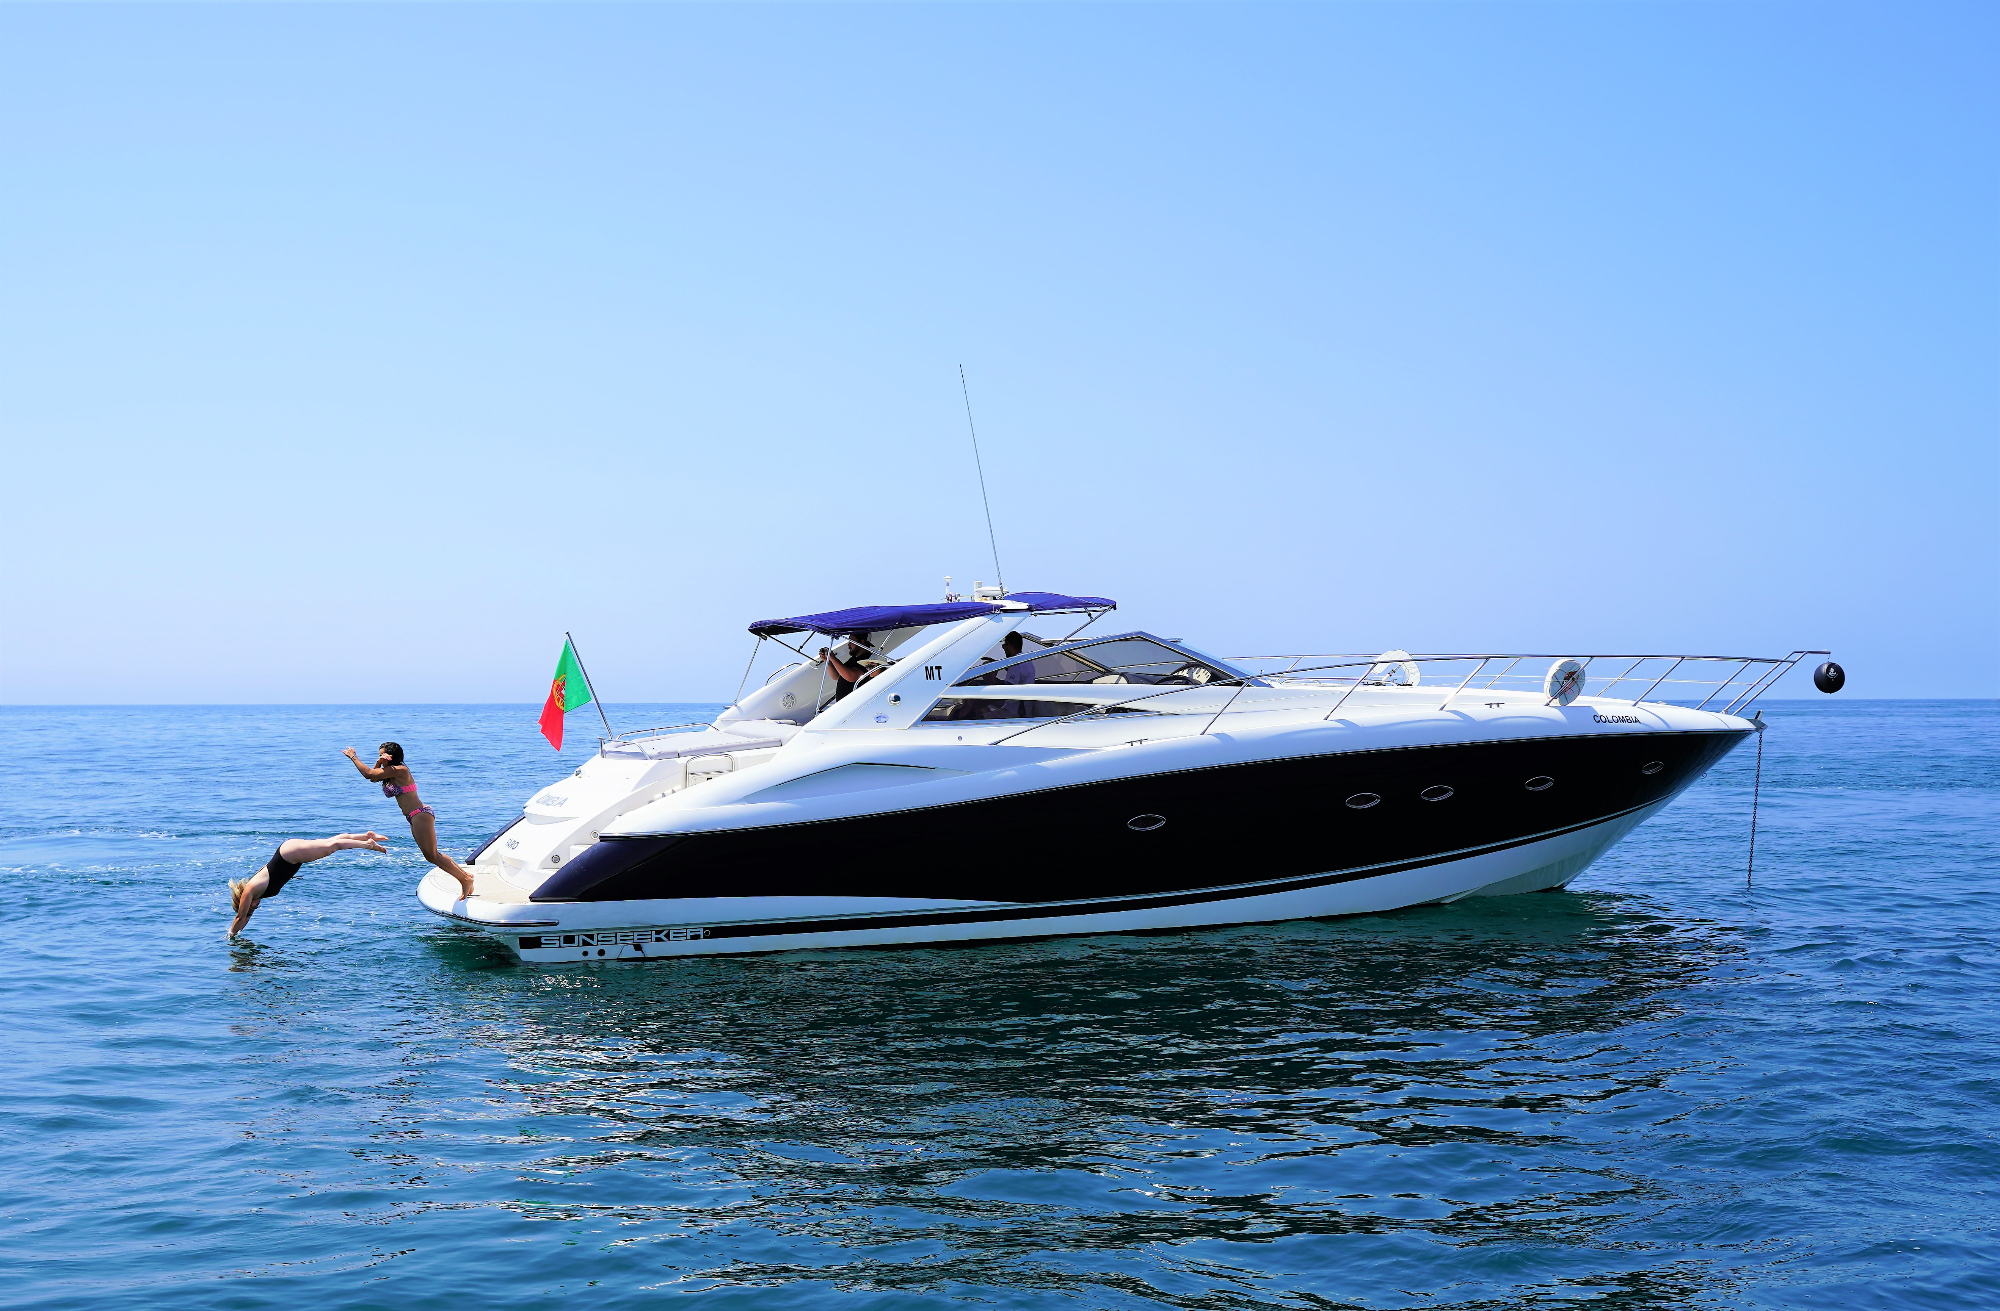 Yacht Charter in Algarve - Everything you need to know before you start your luxury journey.